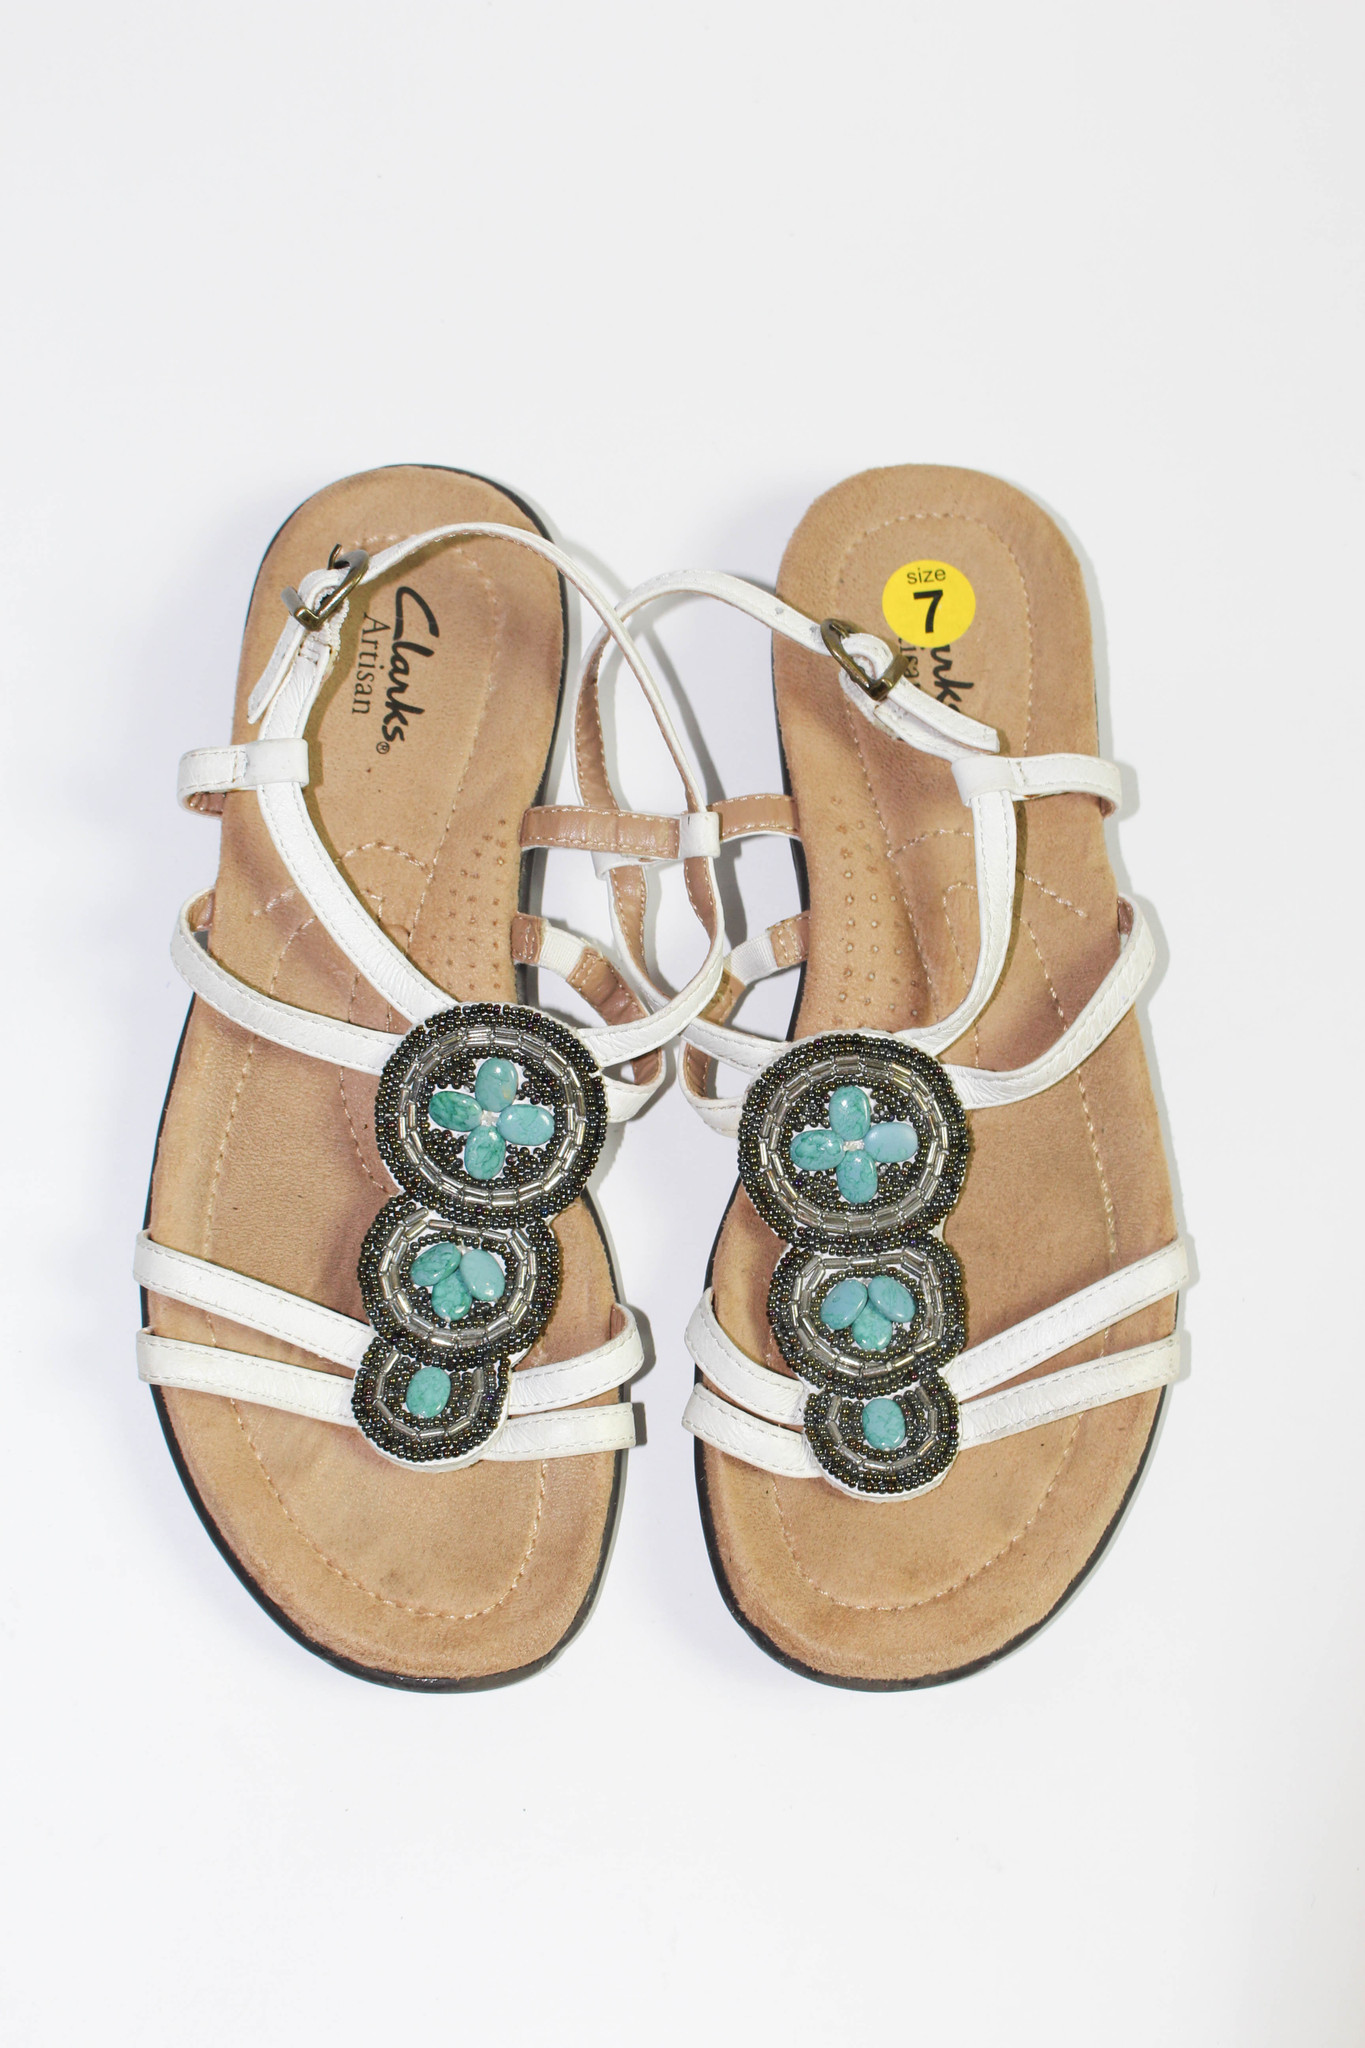 auricular muerto etc.  Clarks Artisan White Leather Strappy Faux Turquoise Sandals - US 7 -  thethingsyouwear